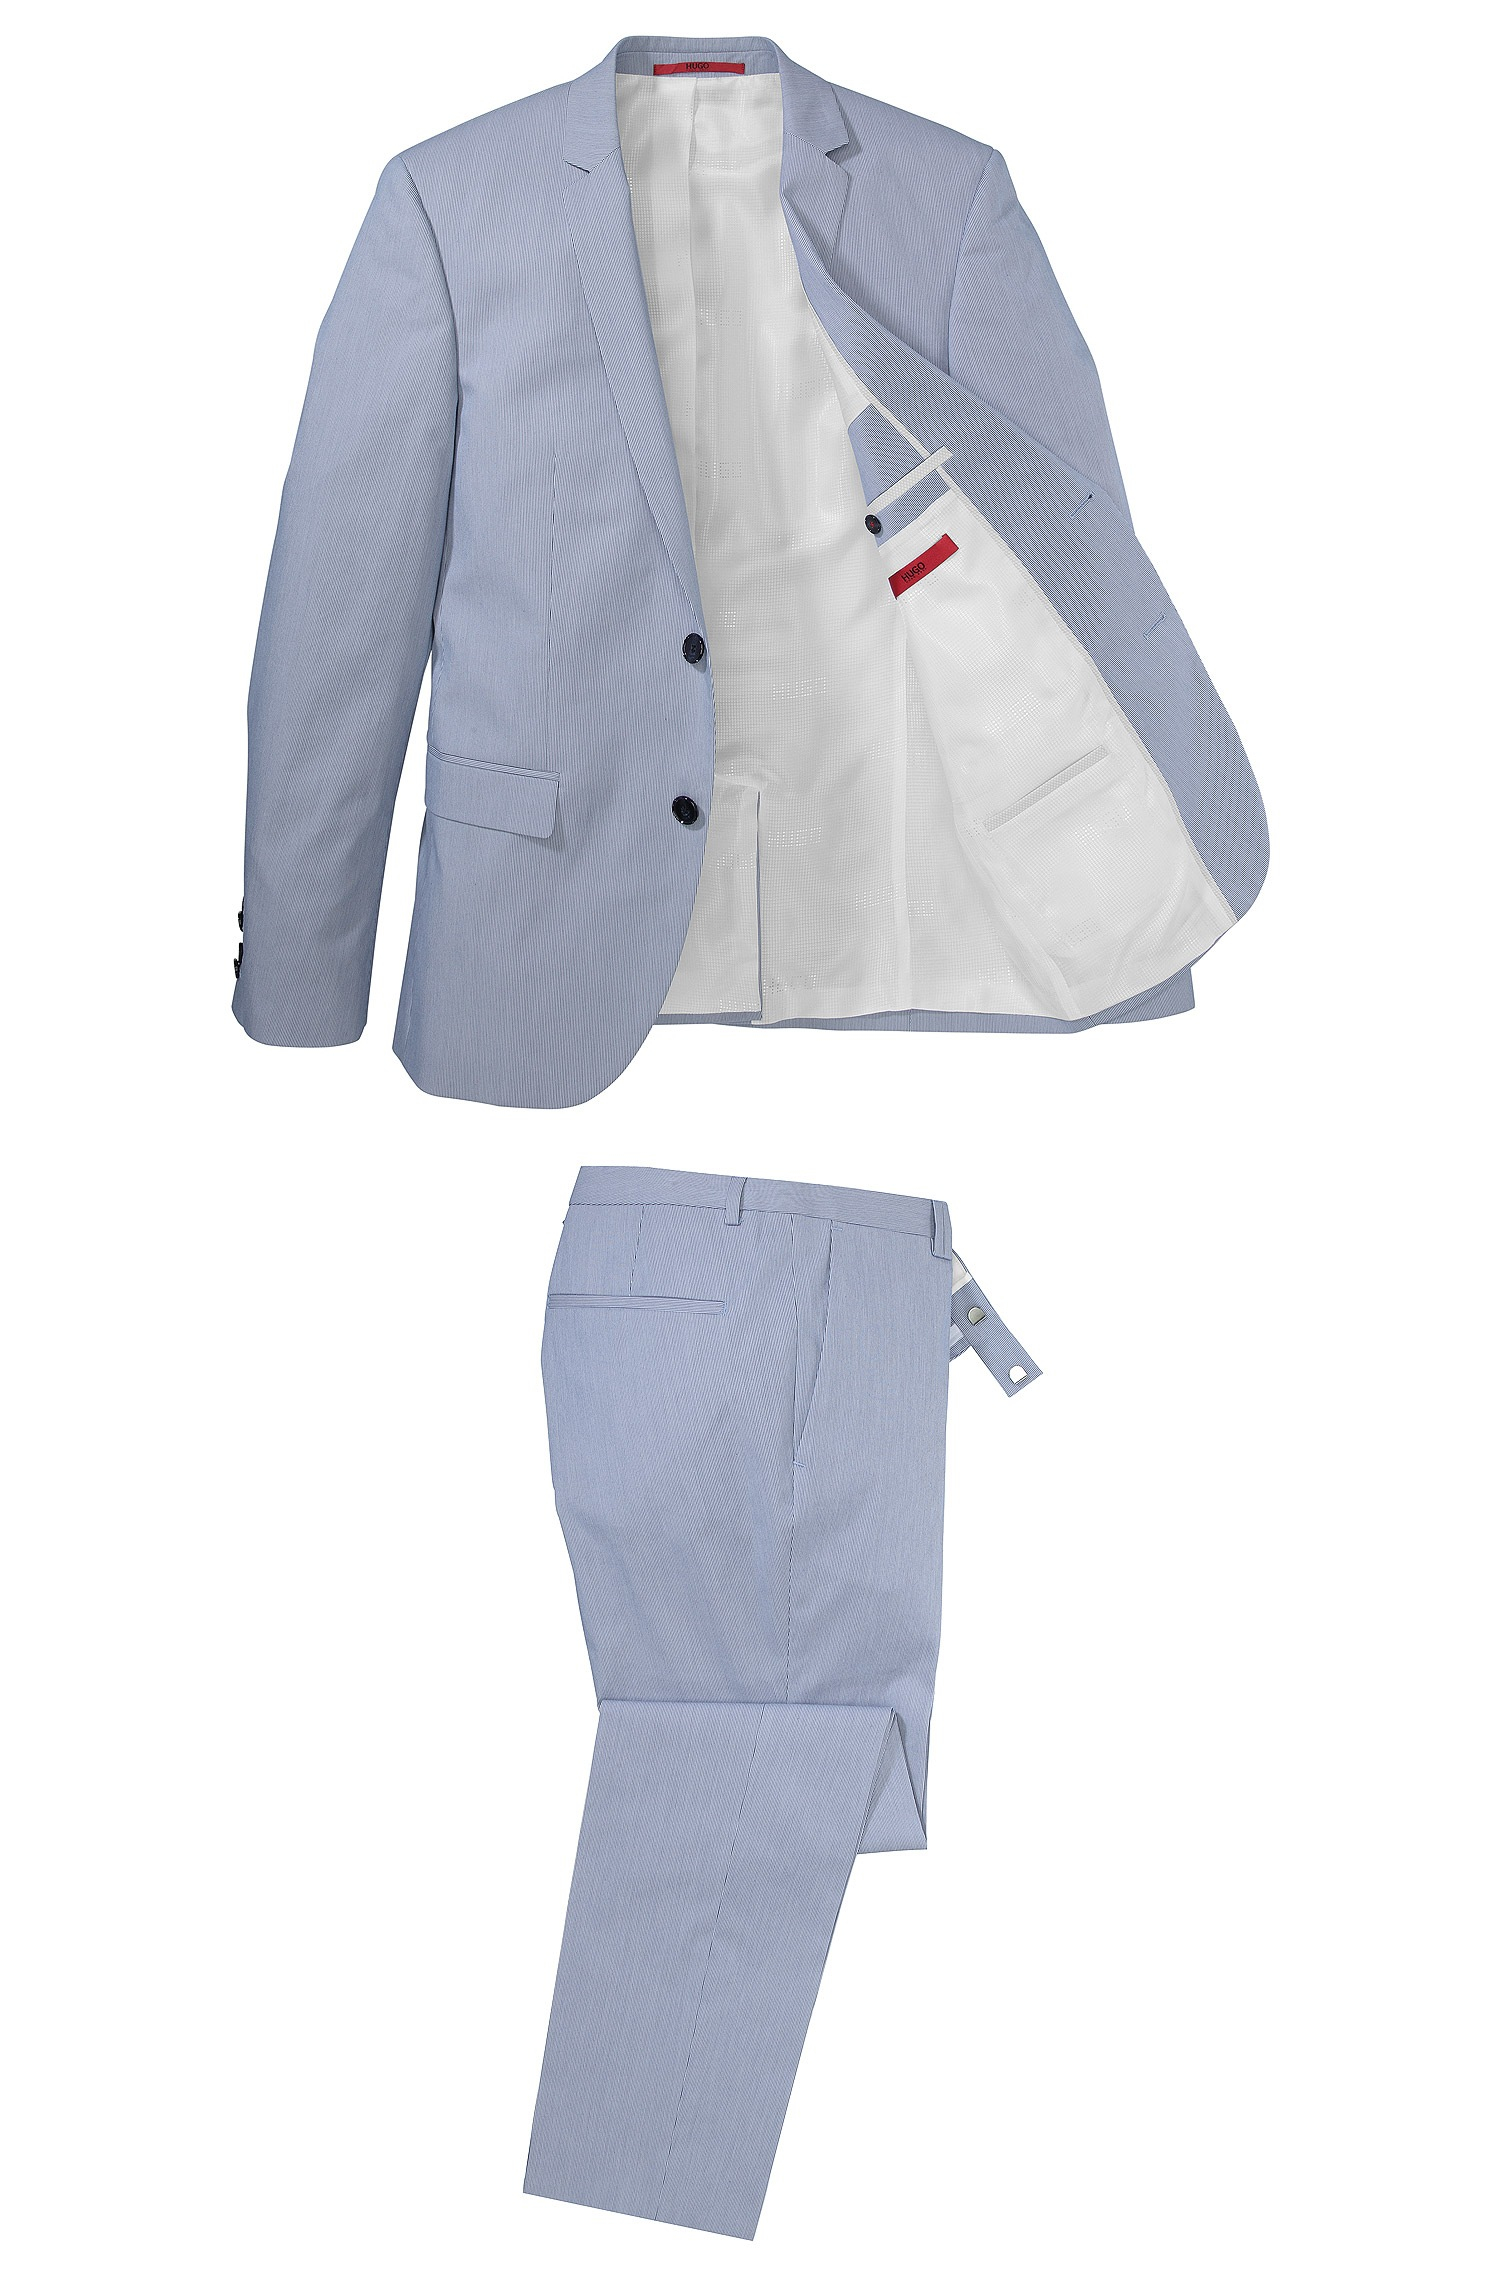 a95115ff9 HUGO 'Adris/Heibo' | Extra Slim Fit, Stretch Cotton Blend Suit in ...